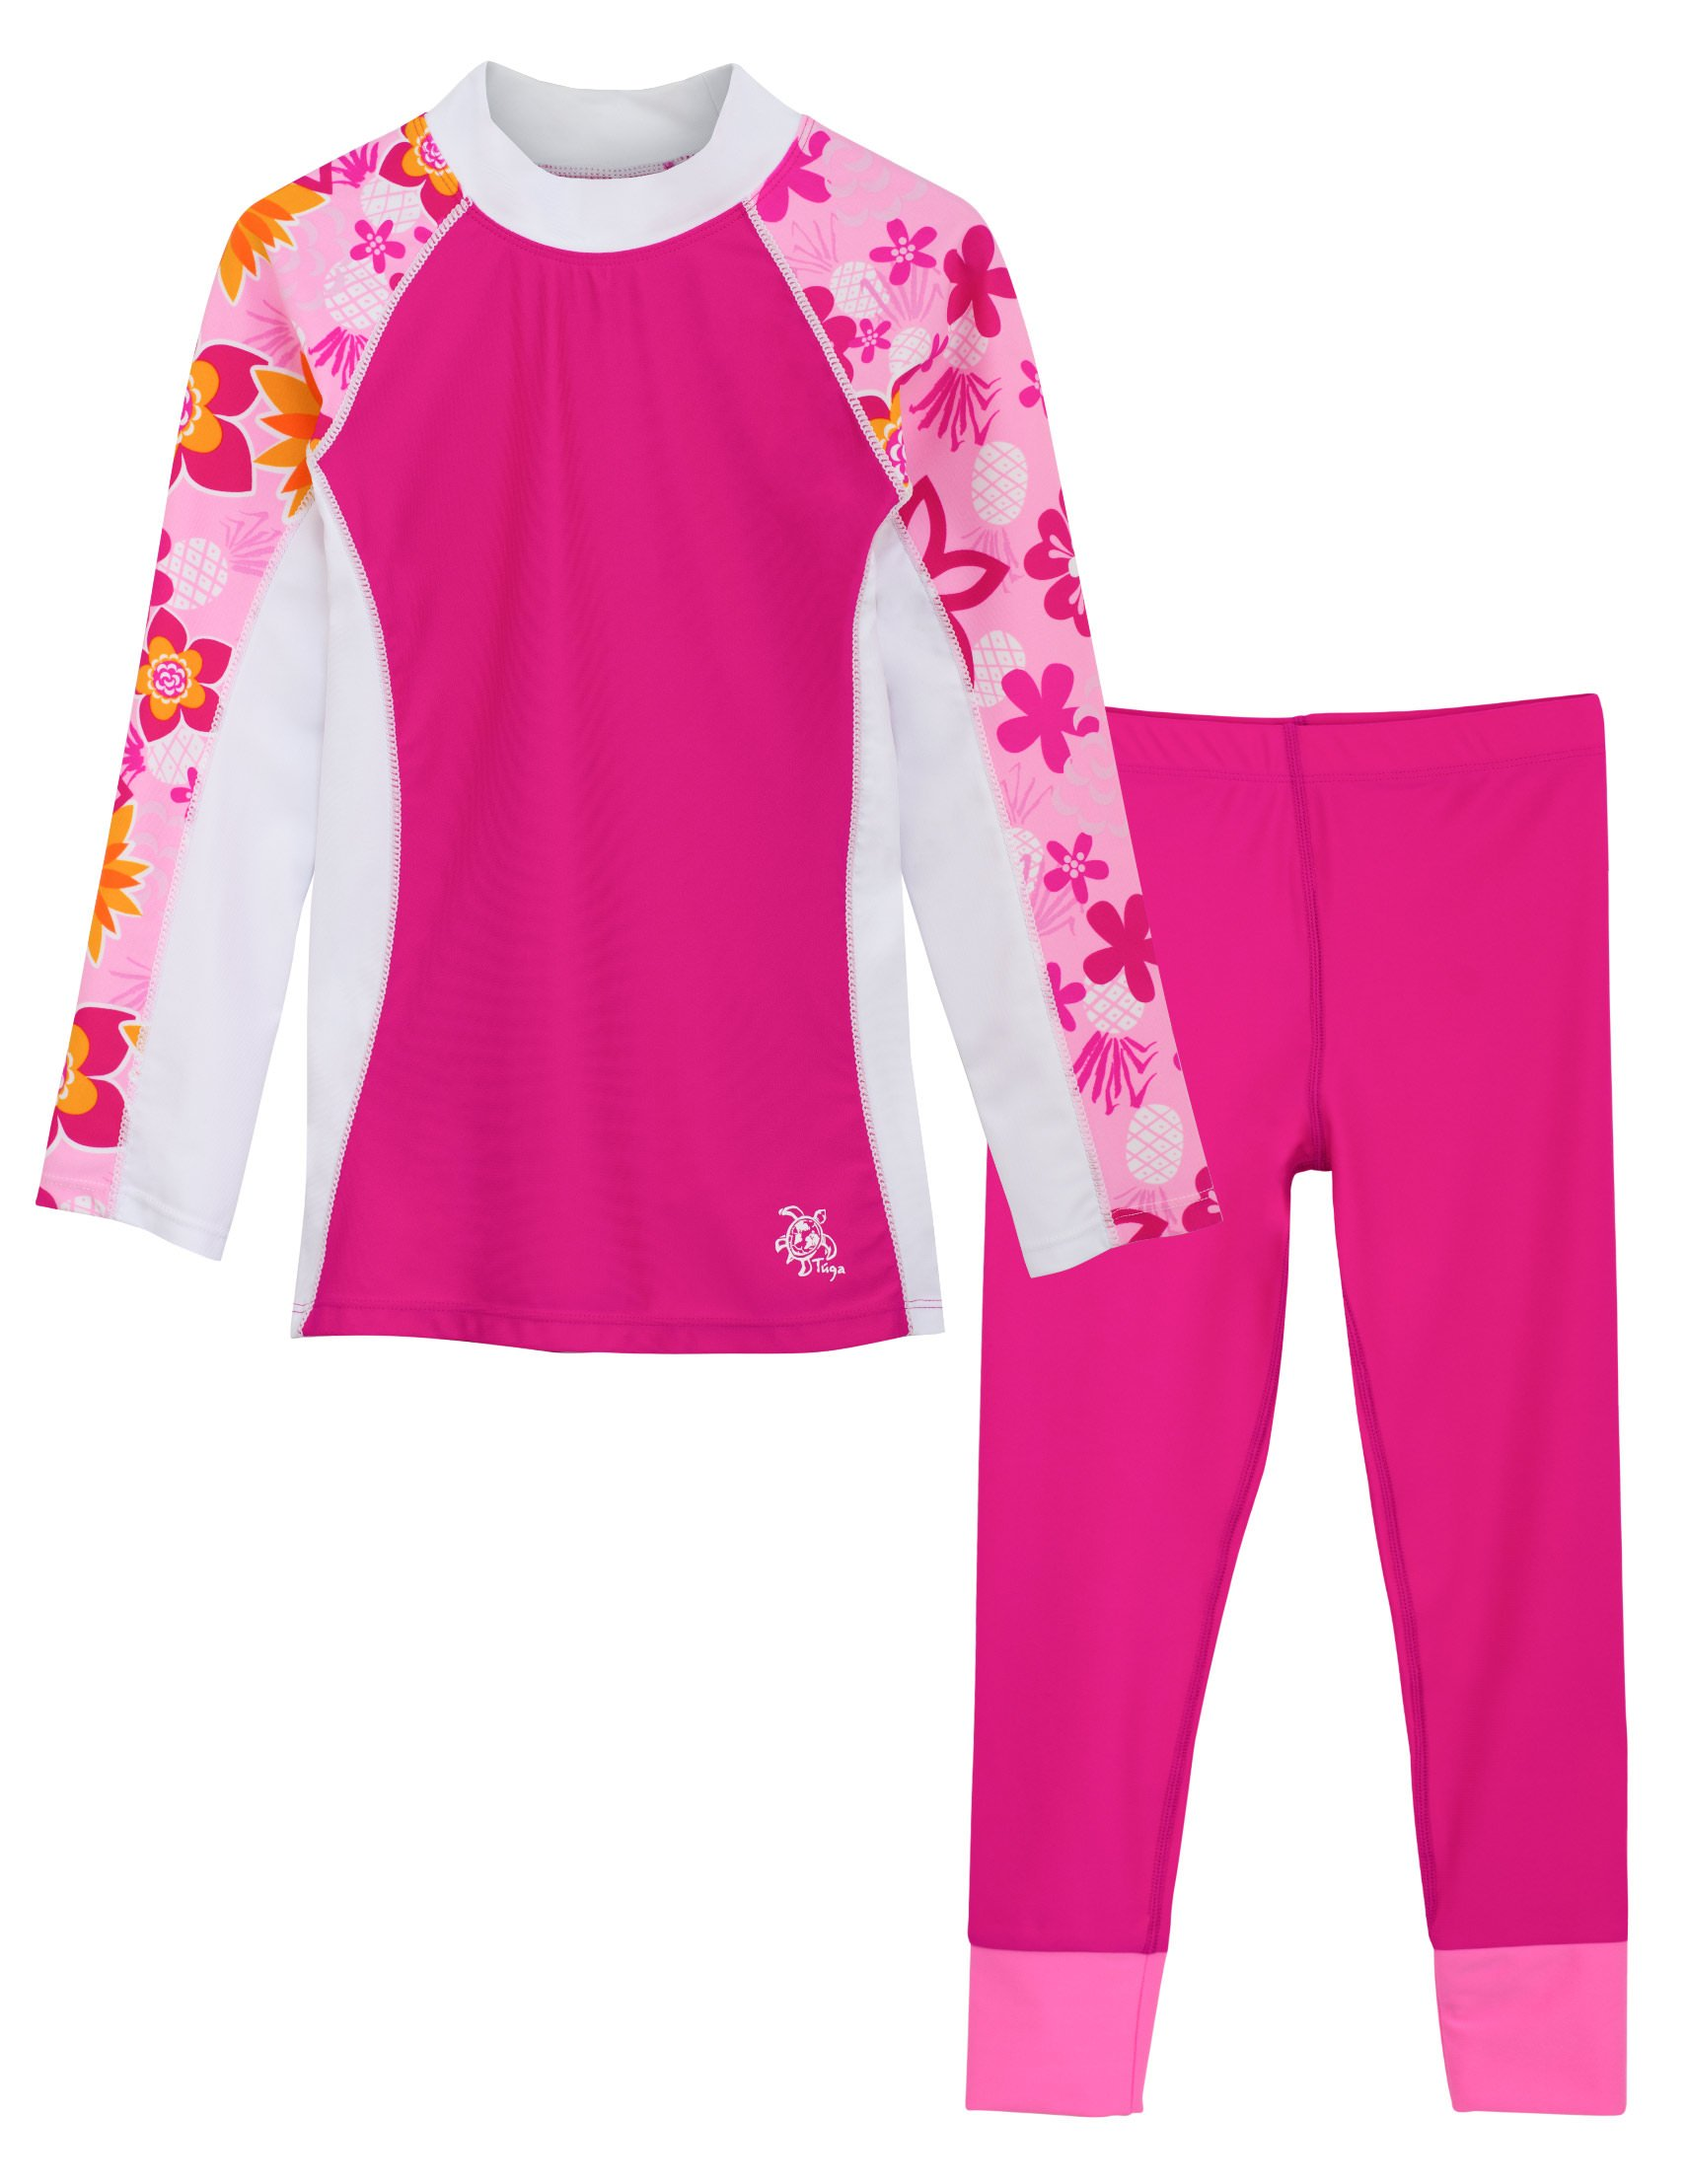 Tuga Girls Shoreline L/S Taffy & Swim Legging Fuchsia (UPF 50+), 12/18 mos by Tuga Sunwear